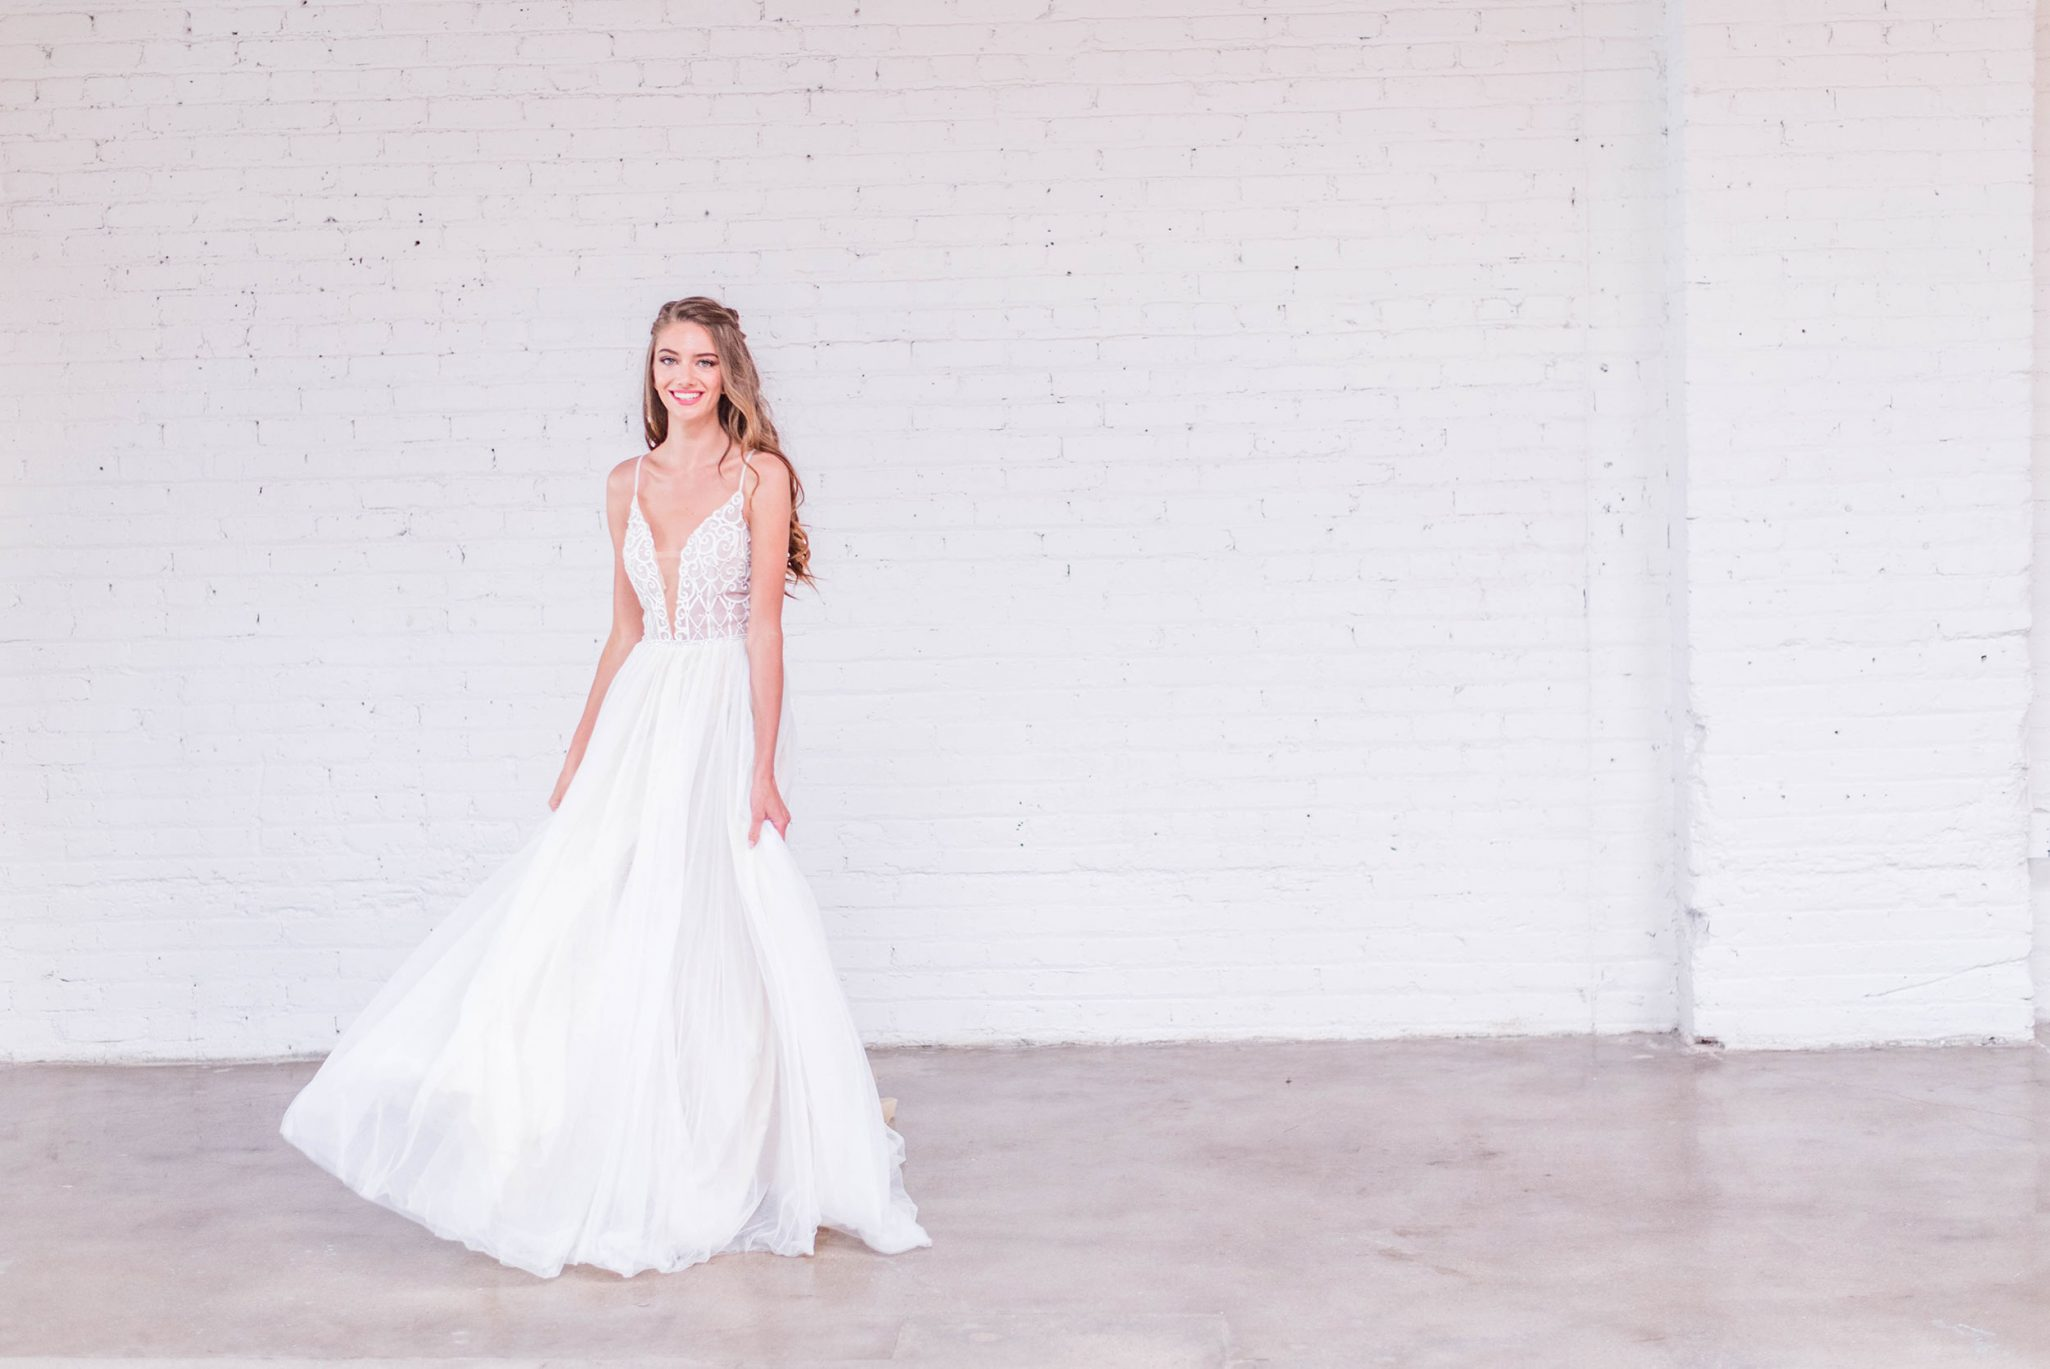 Bride | A Pretty Bridal Editorial, Denver Colorado